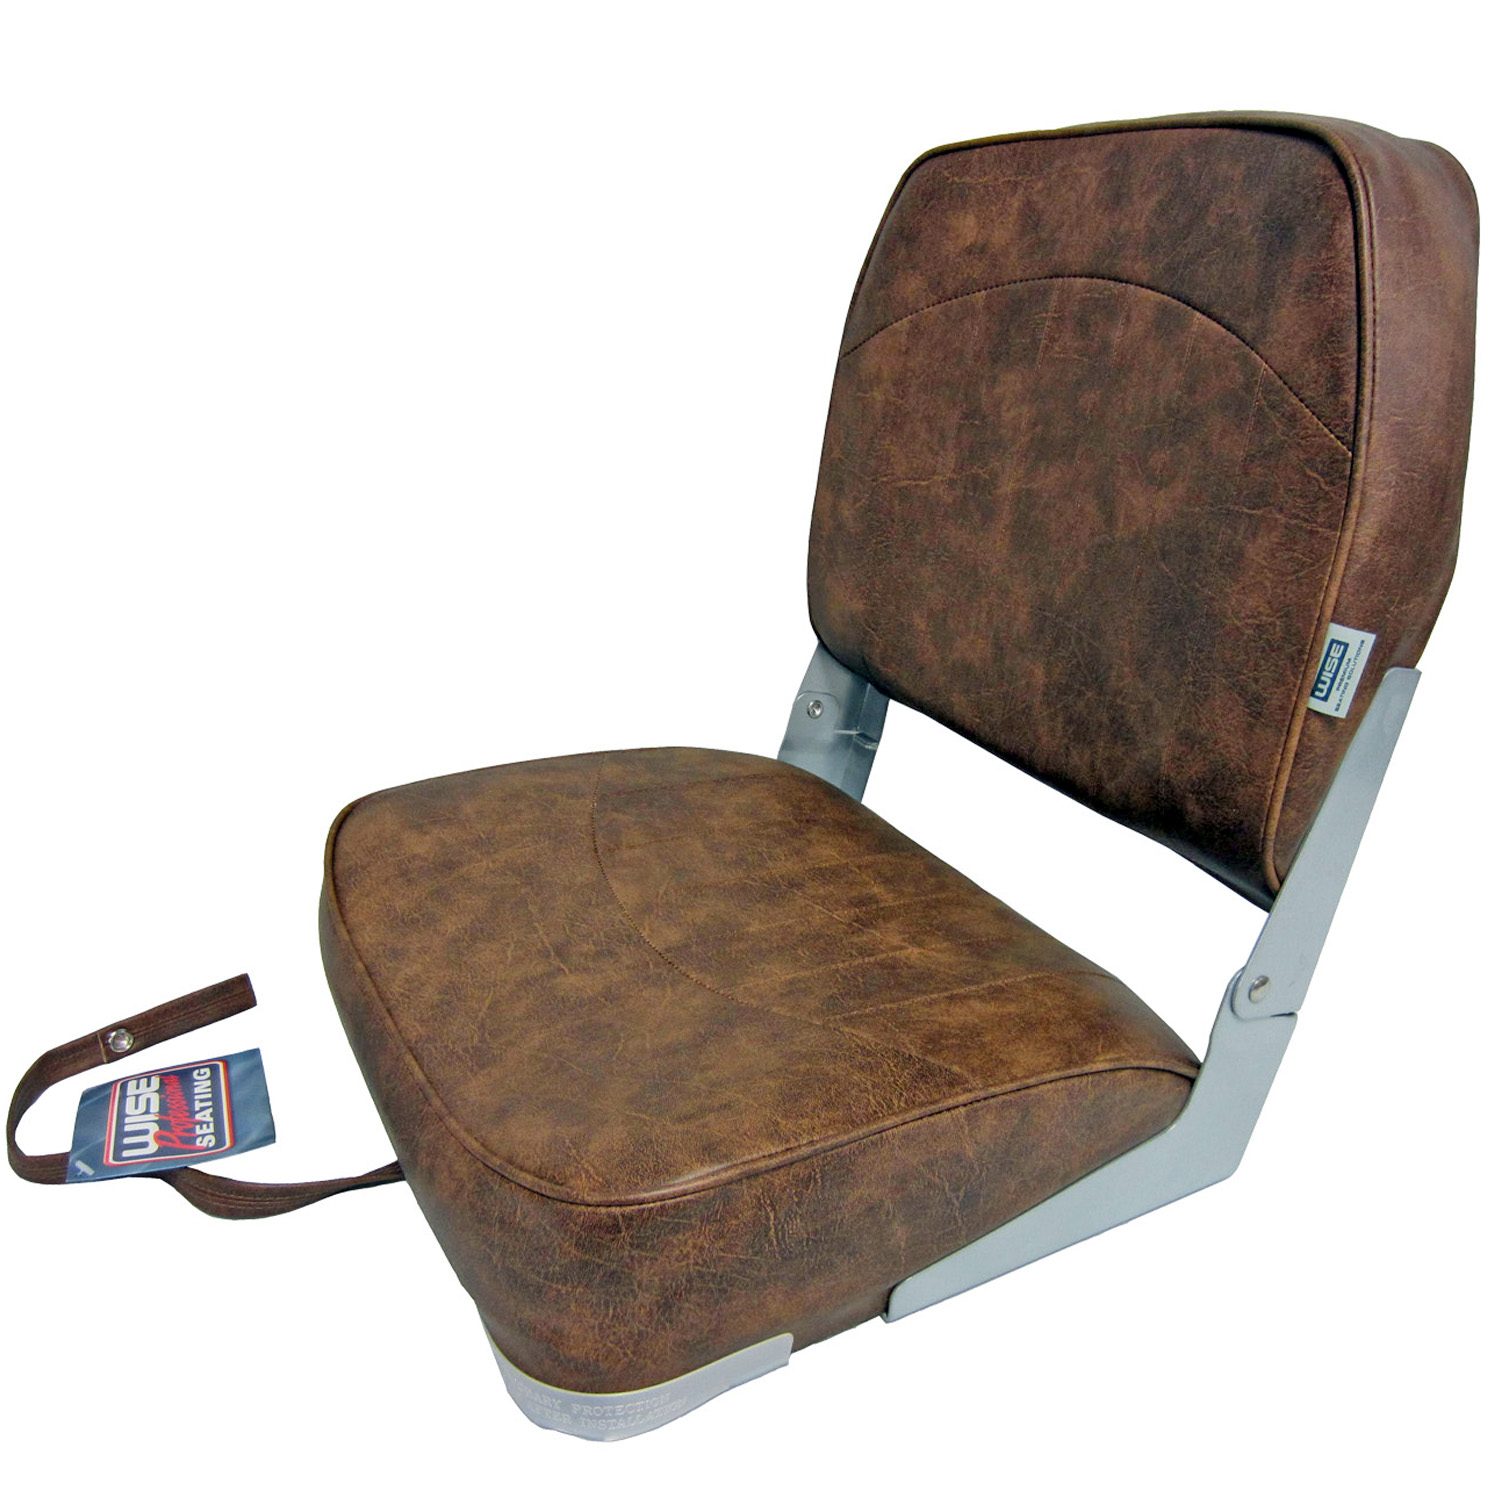 Composite Chairs Wise New Fishing Boat Seat Chair Brown Composite Base